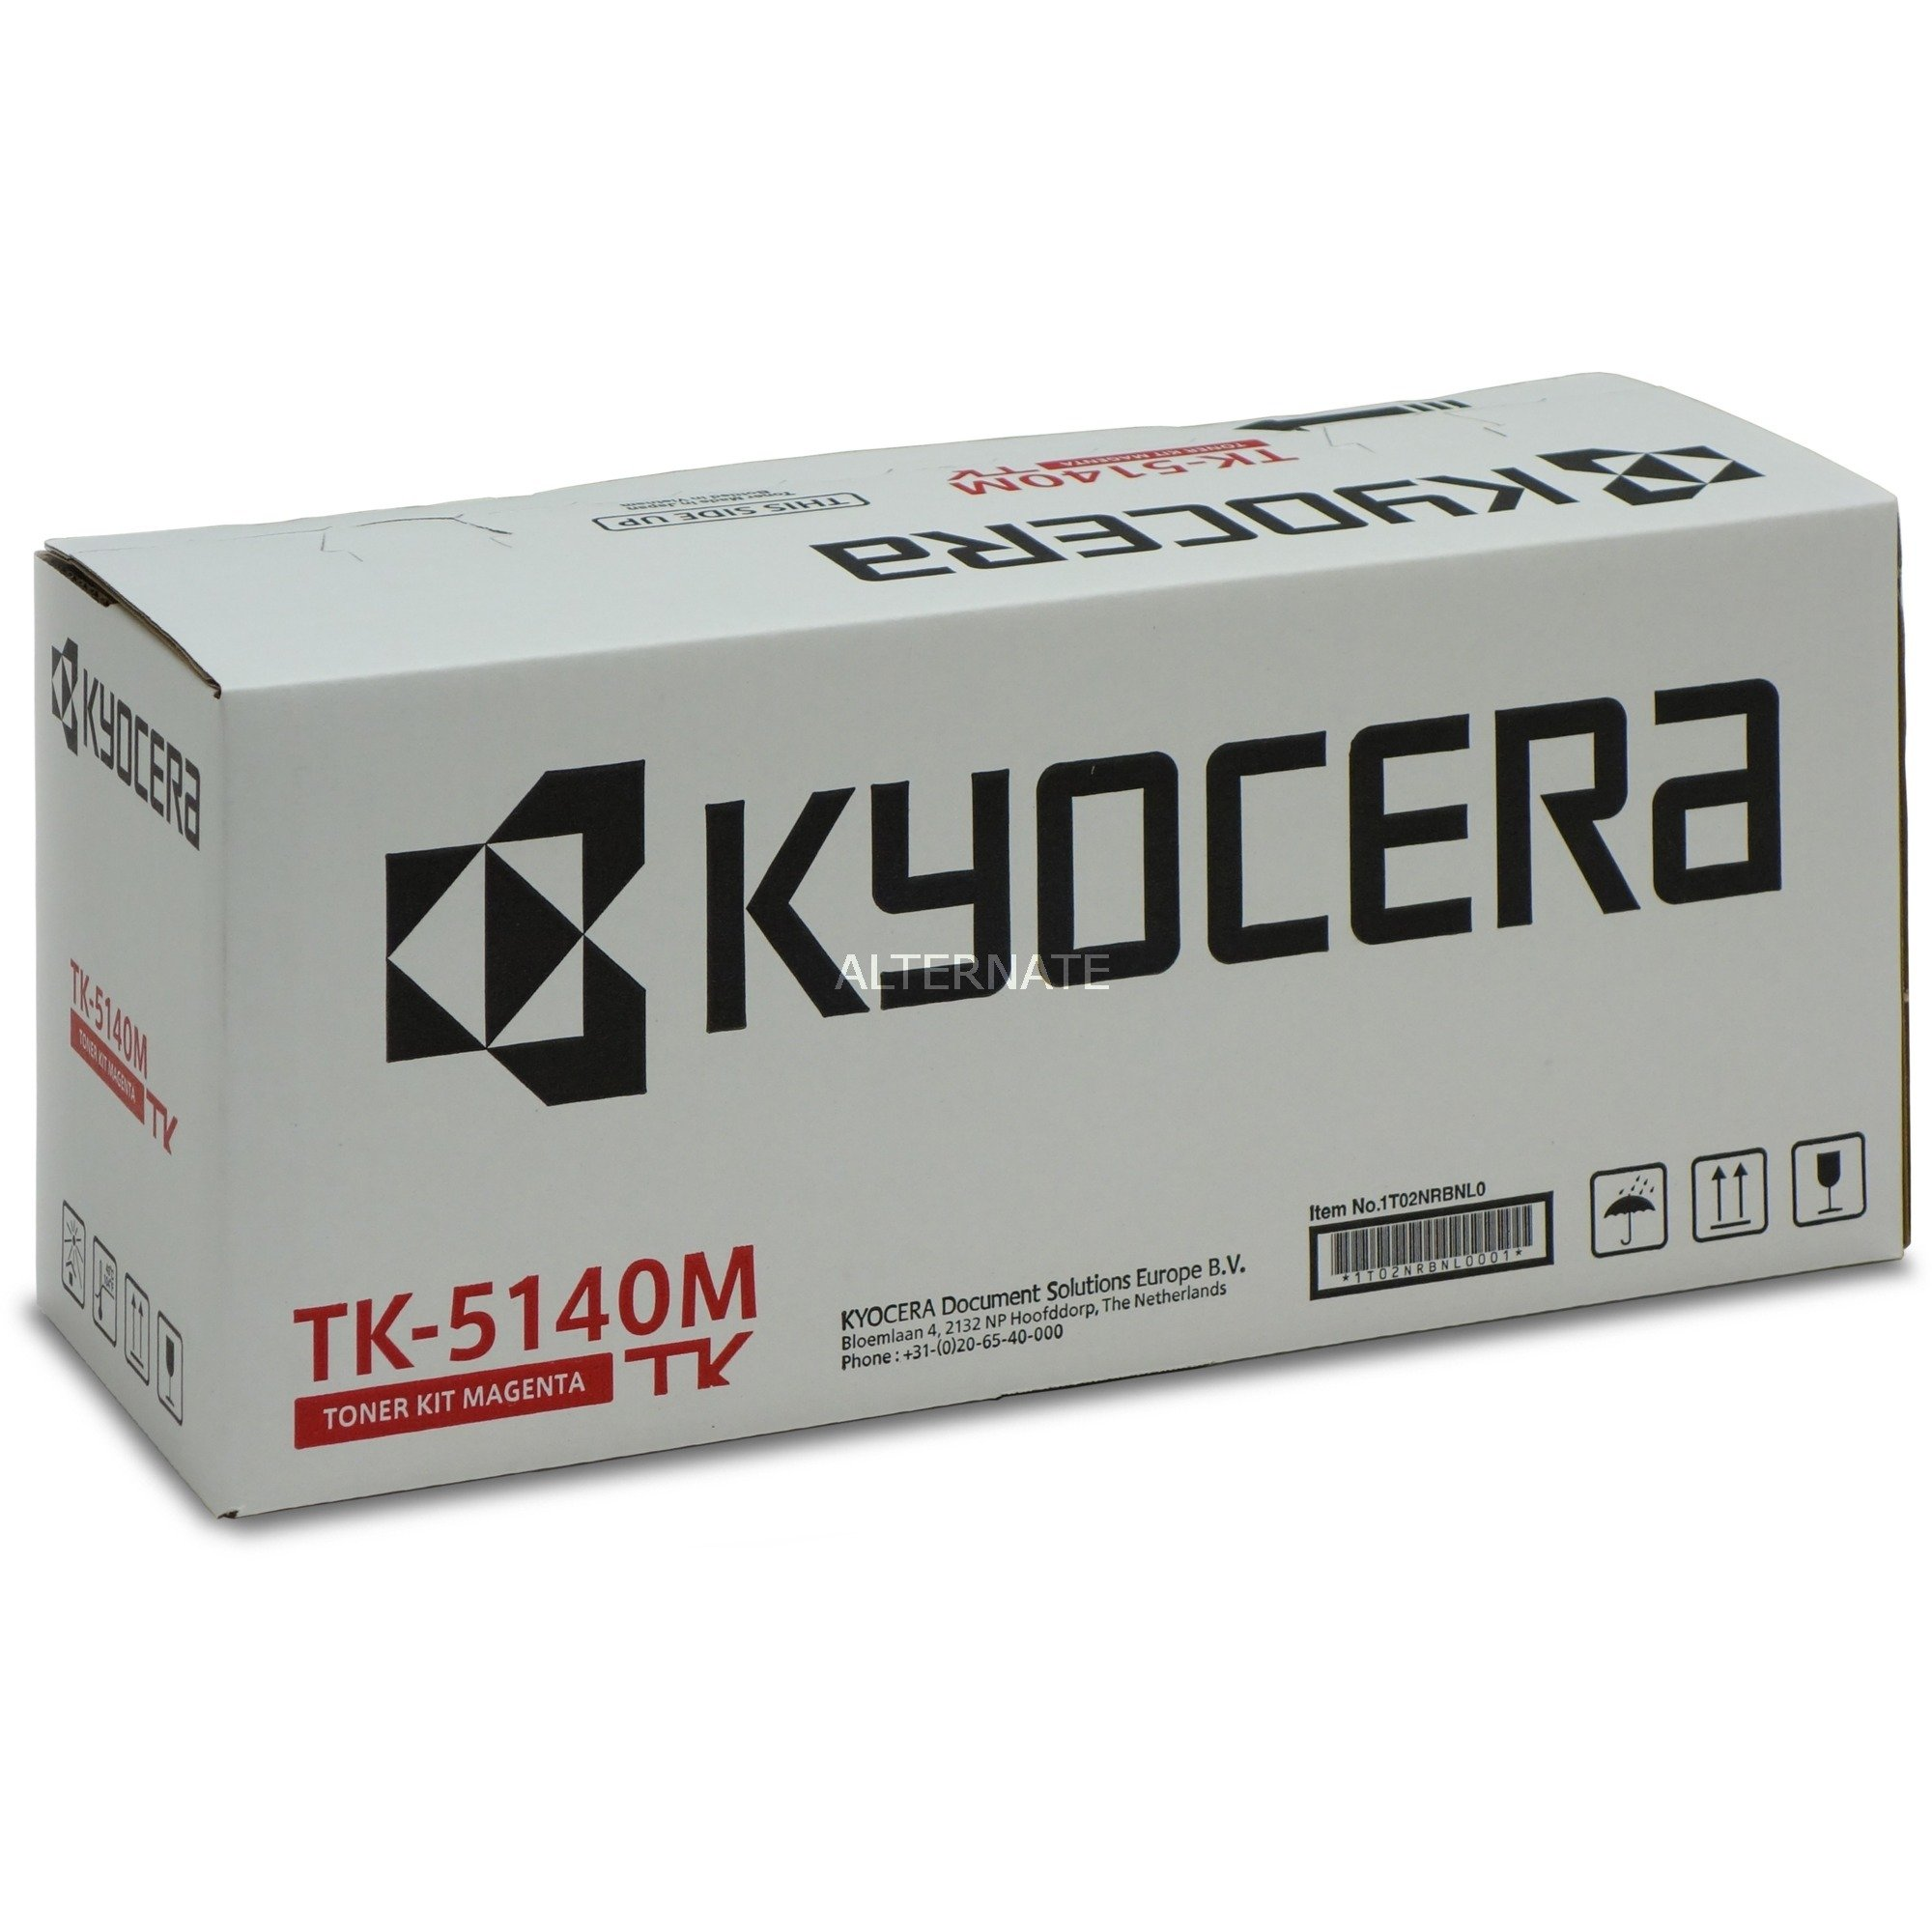 TK-5140M 5000pages Magenta, Toner